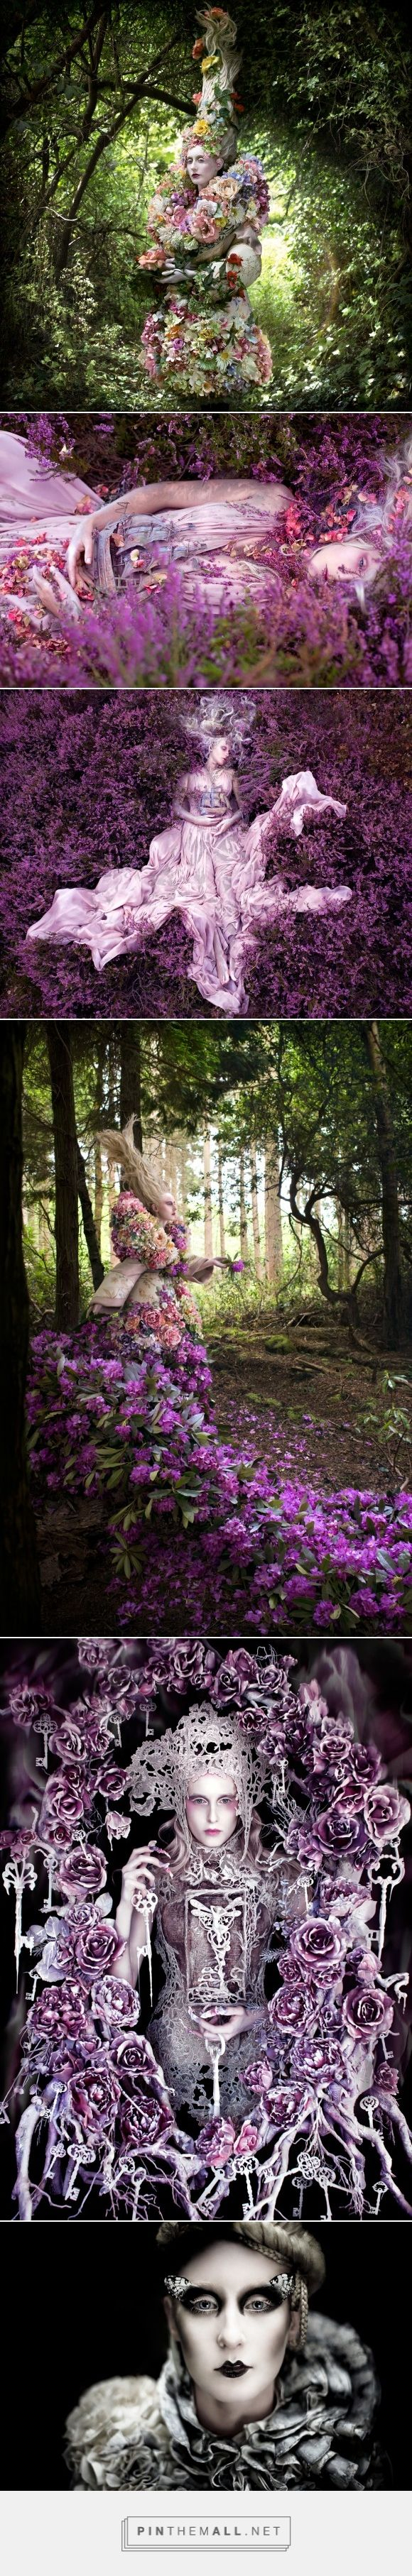 Wonderland - Kirsty Mitchell Photography...